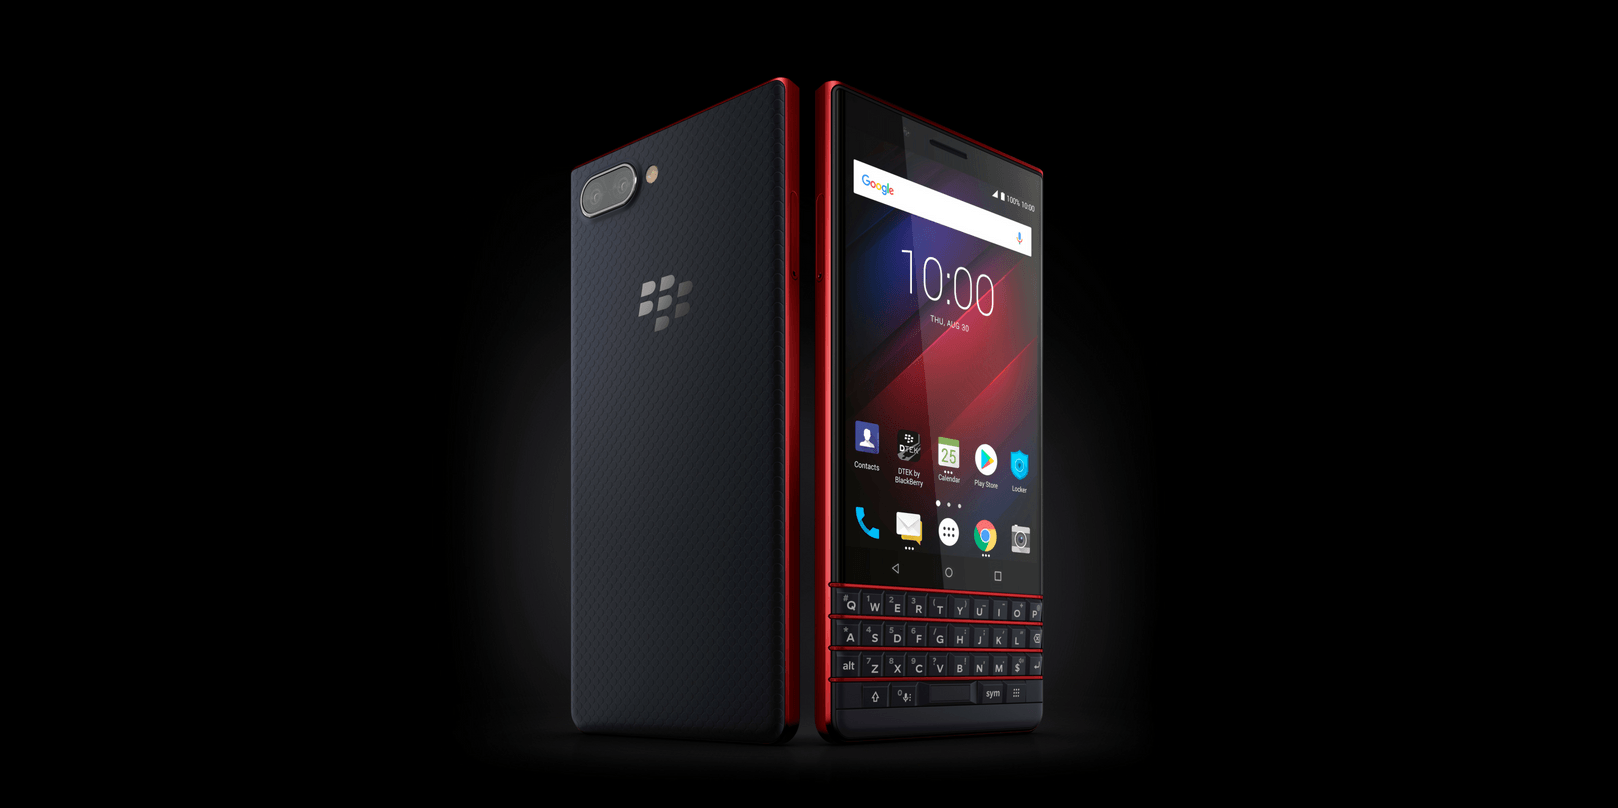 The BlackBerry Key2 LE is a $399 phone with a QWERTY keyboard